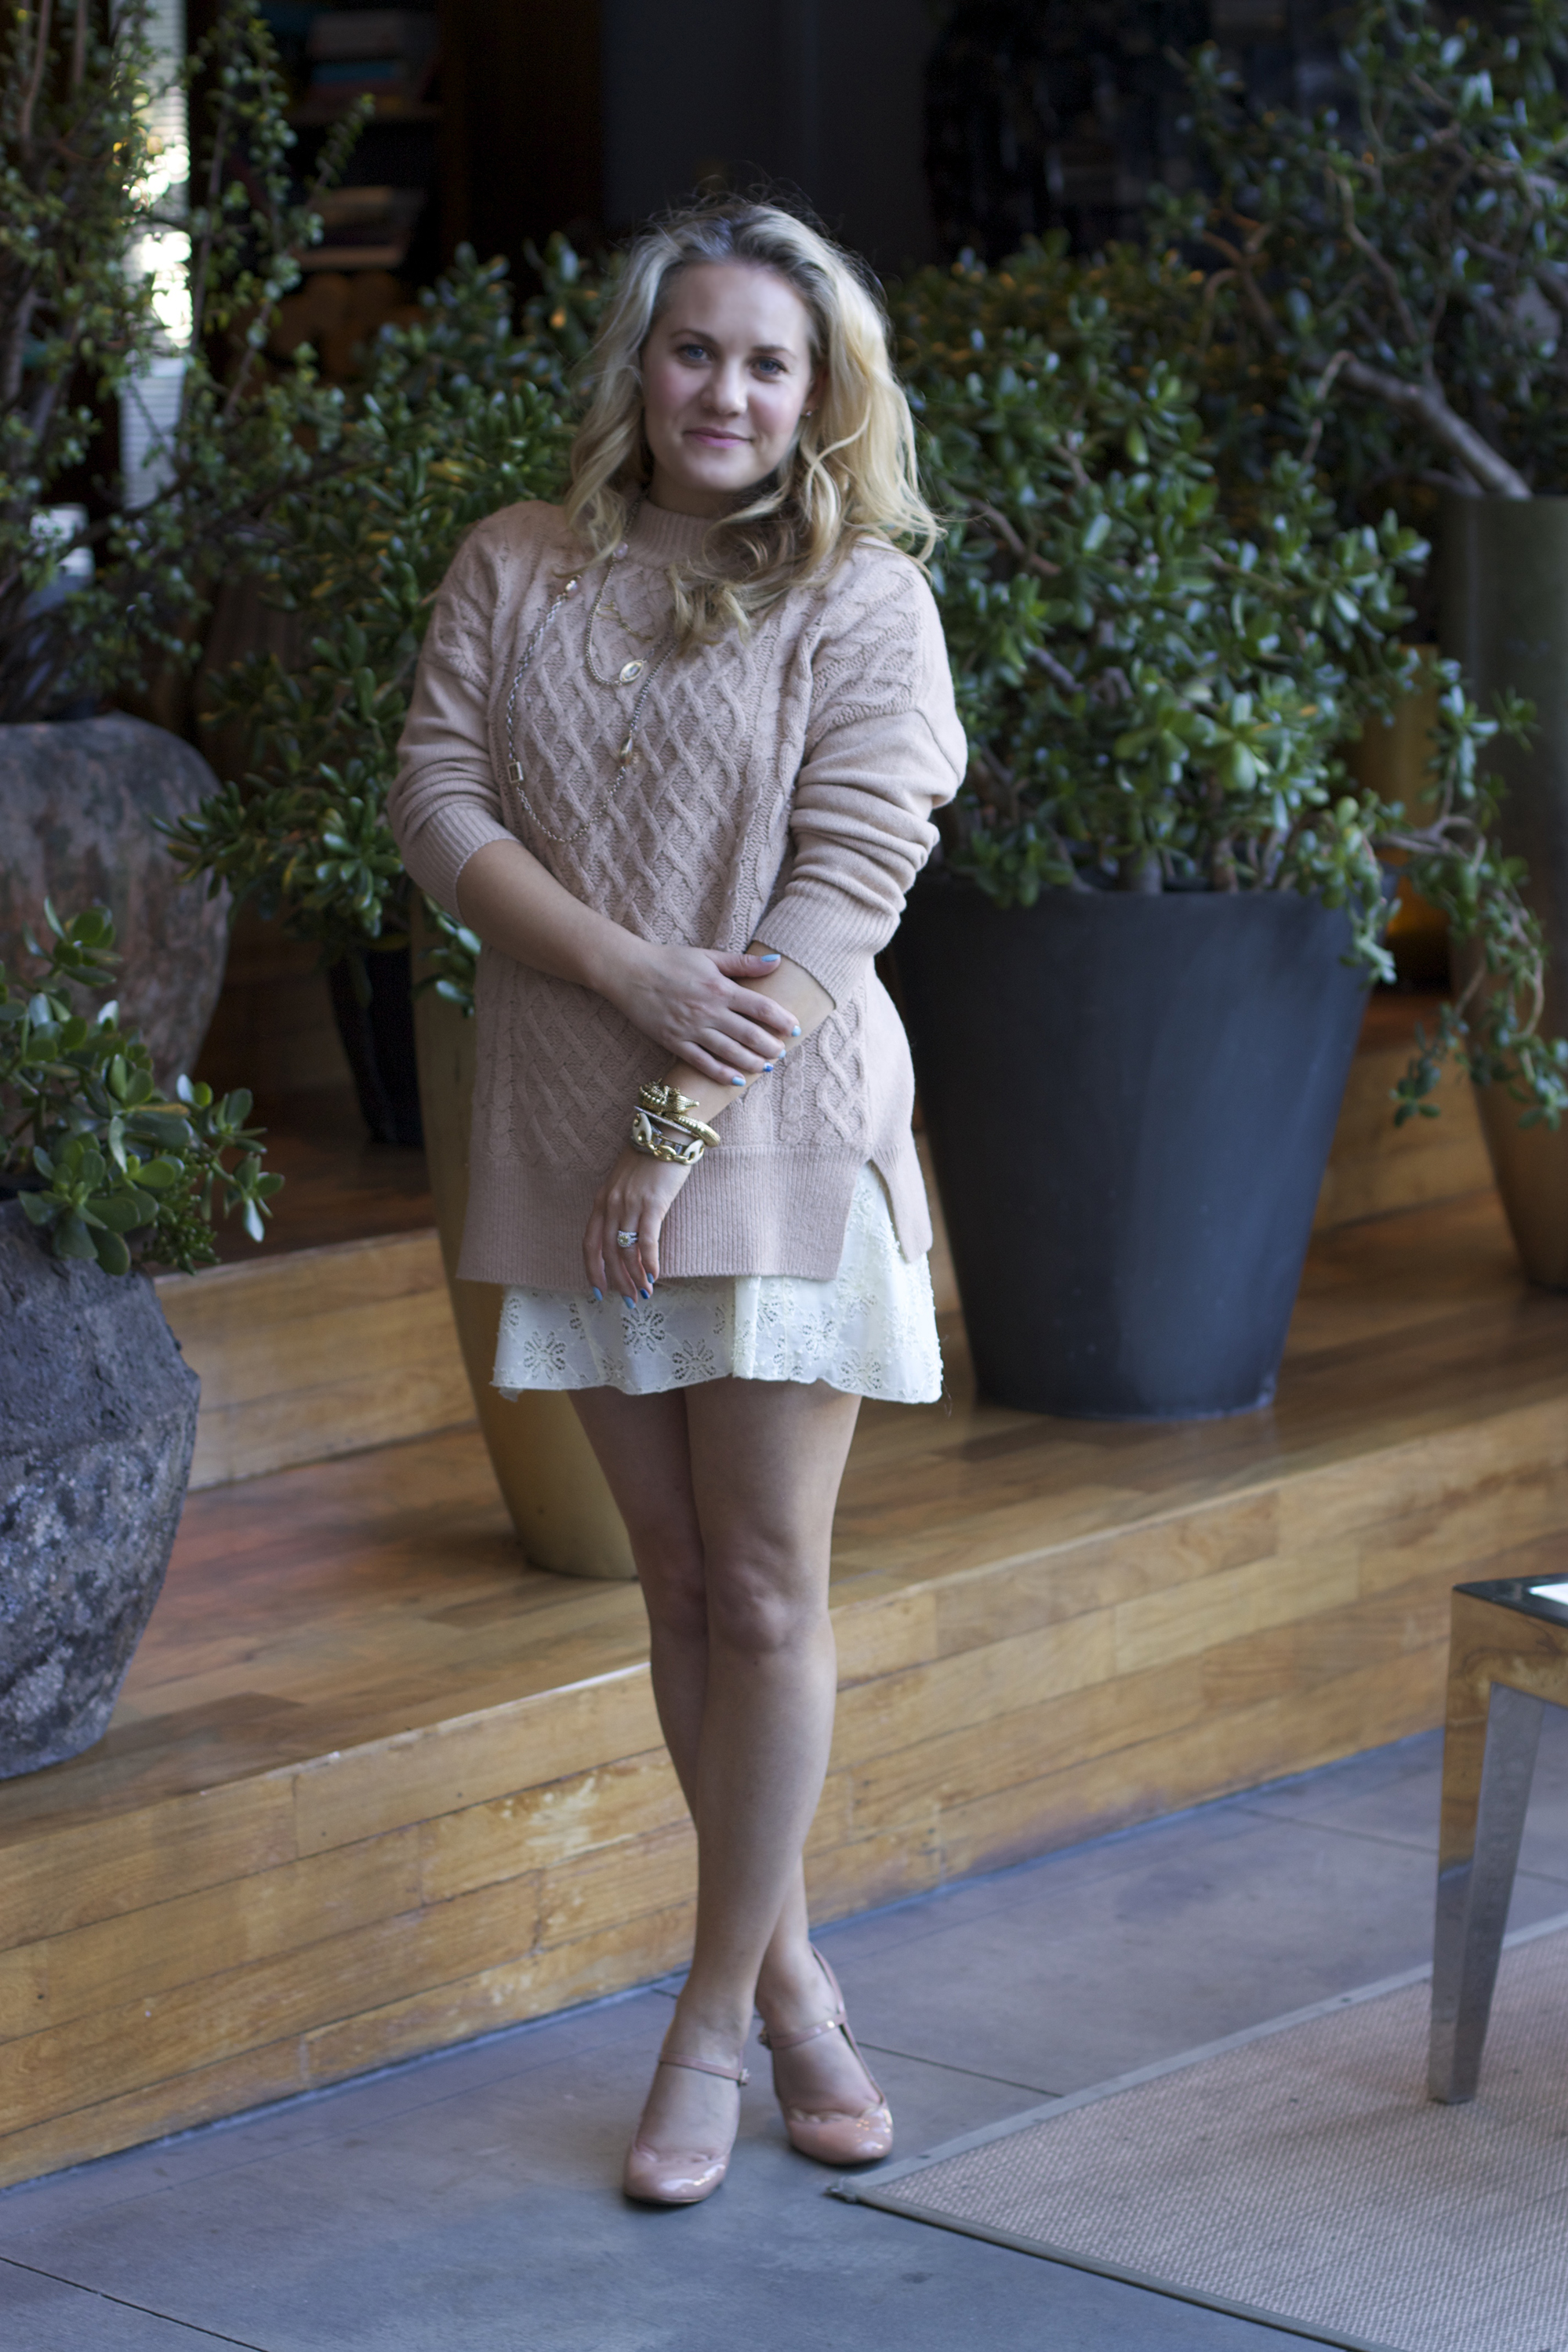 LuckyFABB, Joie Sweater, Free People Lace Dress, Nine West Shoes, How to layer, Neutral outfit ideas, Fashion blogger, Spring fashion, Spring outfit ideas, outfit inspiration, Layering, Lace Dress, Cable knit sweaters, LuckyFABB conference, LuckyFABB west